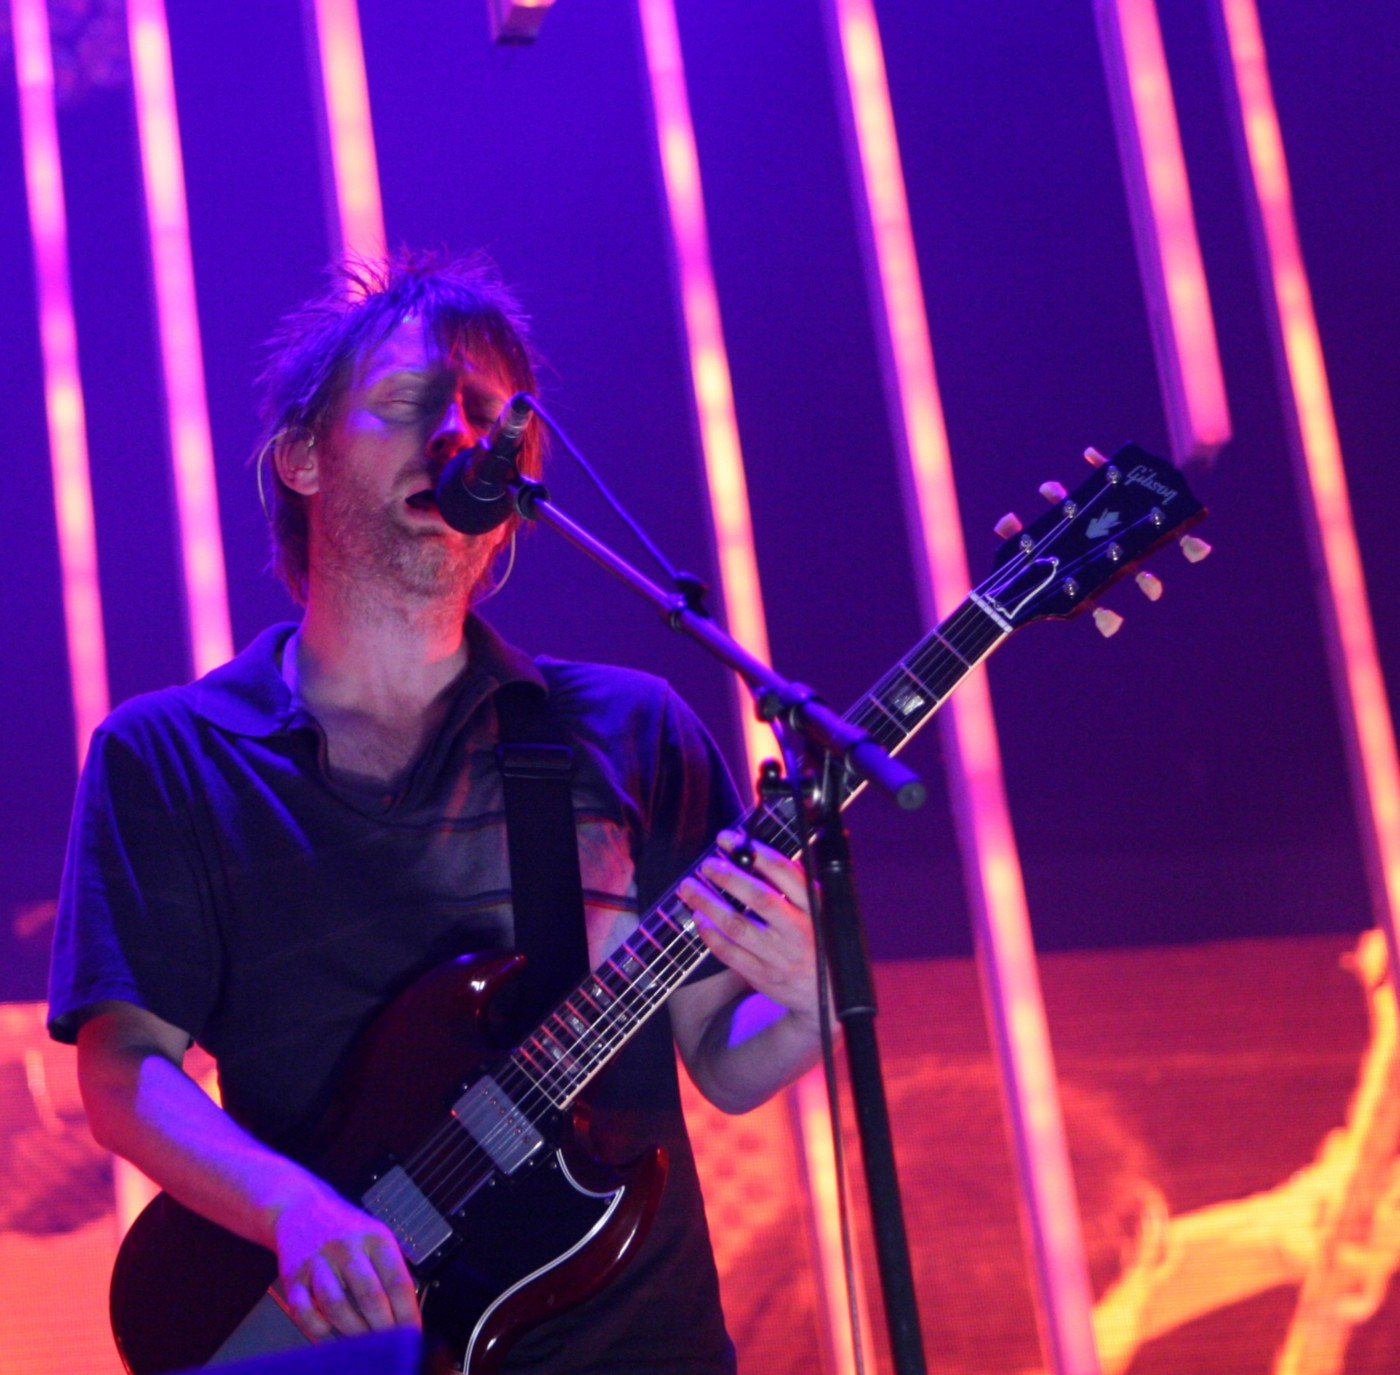 Thom Yorke singing in a Radiohead concert in Amsterdam.